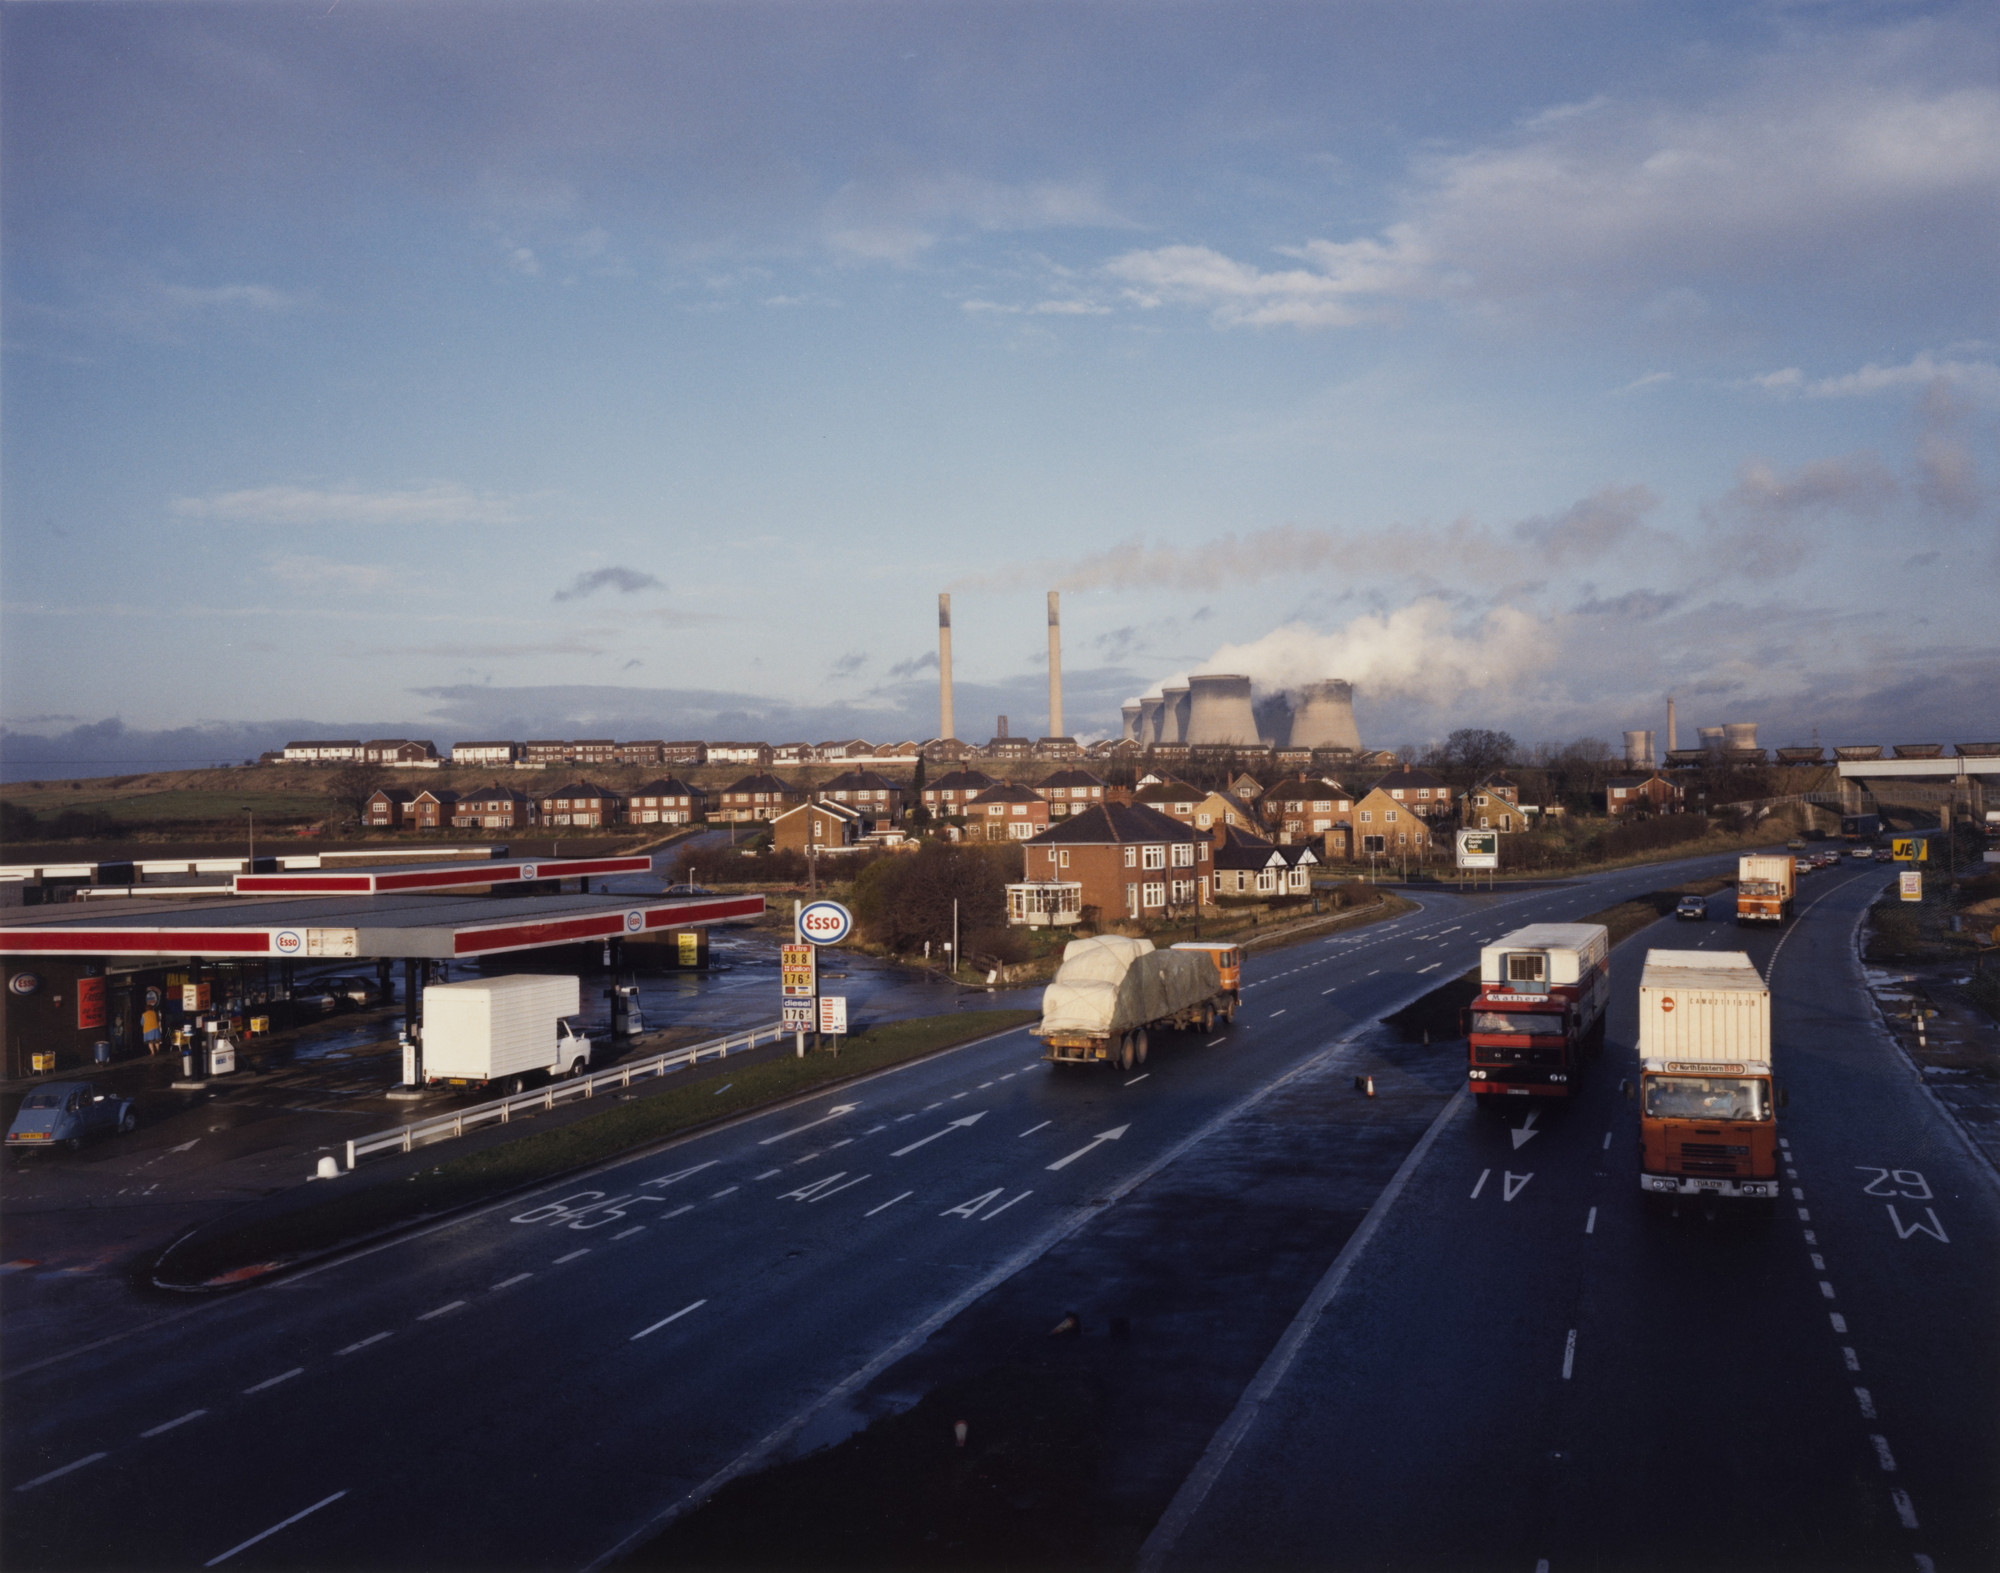 Paul Graham. Ferrybridge Powerstation, West Yorkshire from the portfolio A1: The Great North Road. November 1982